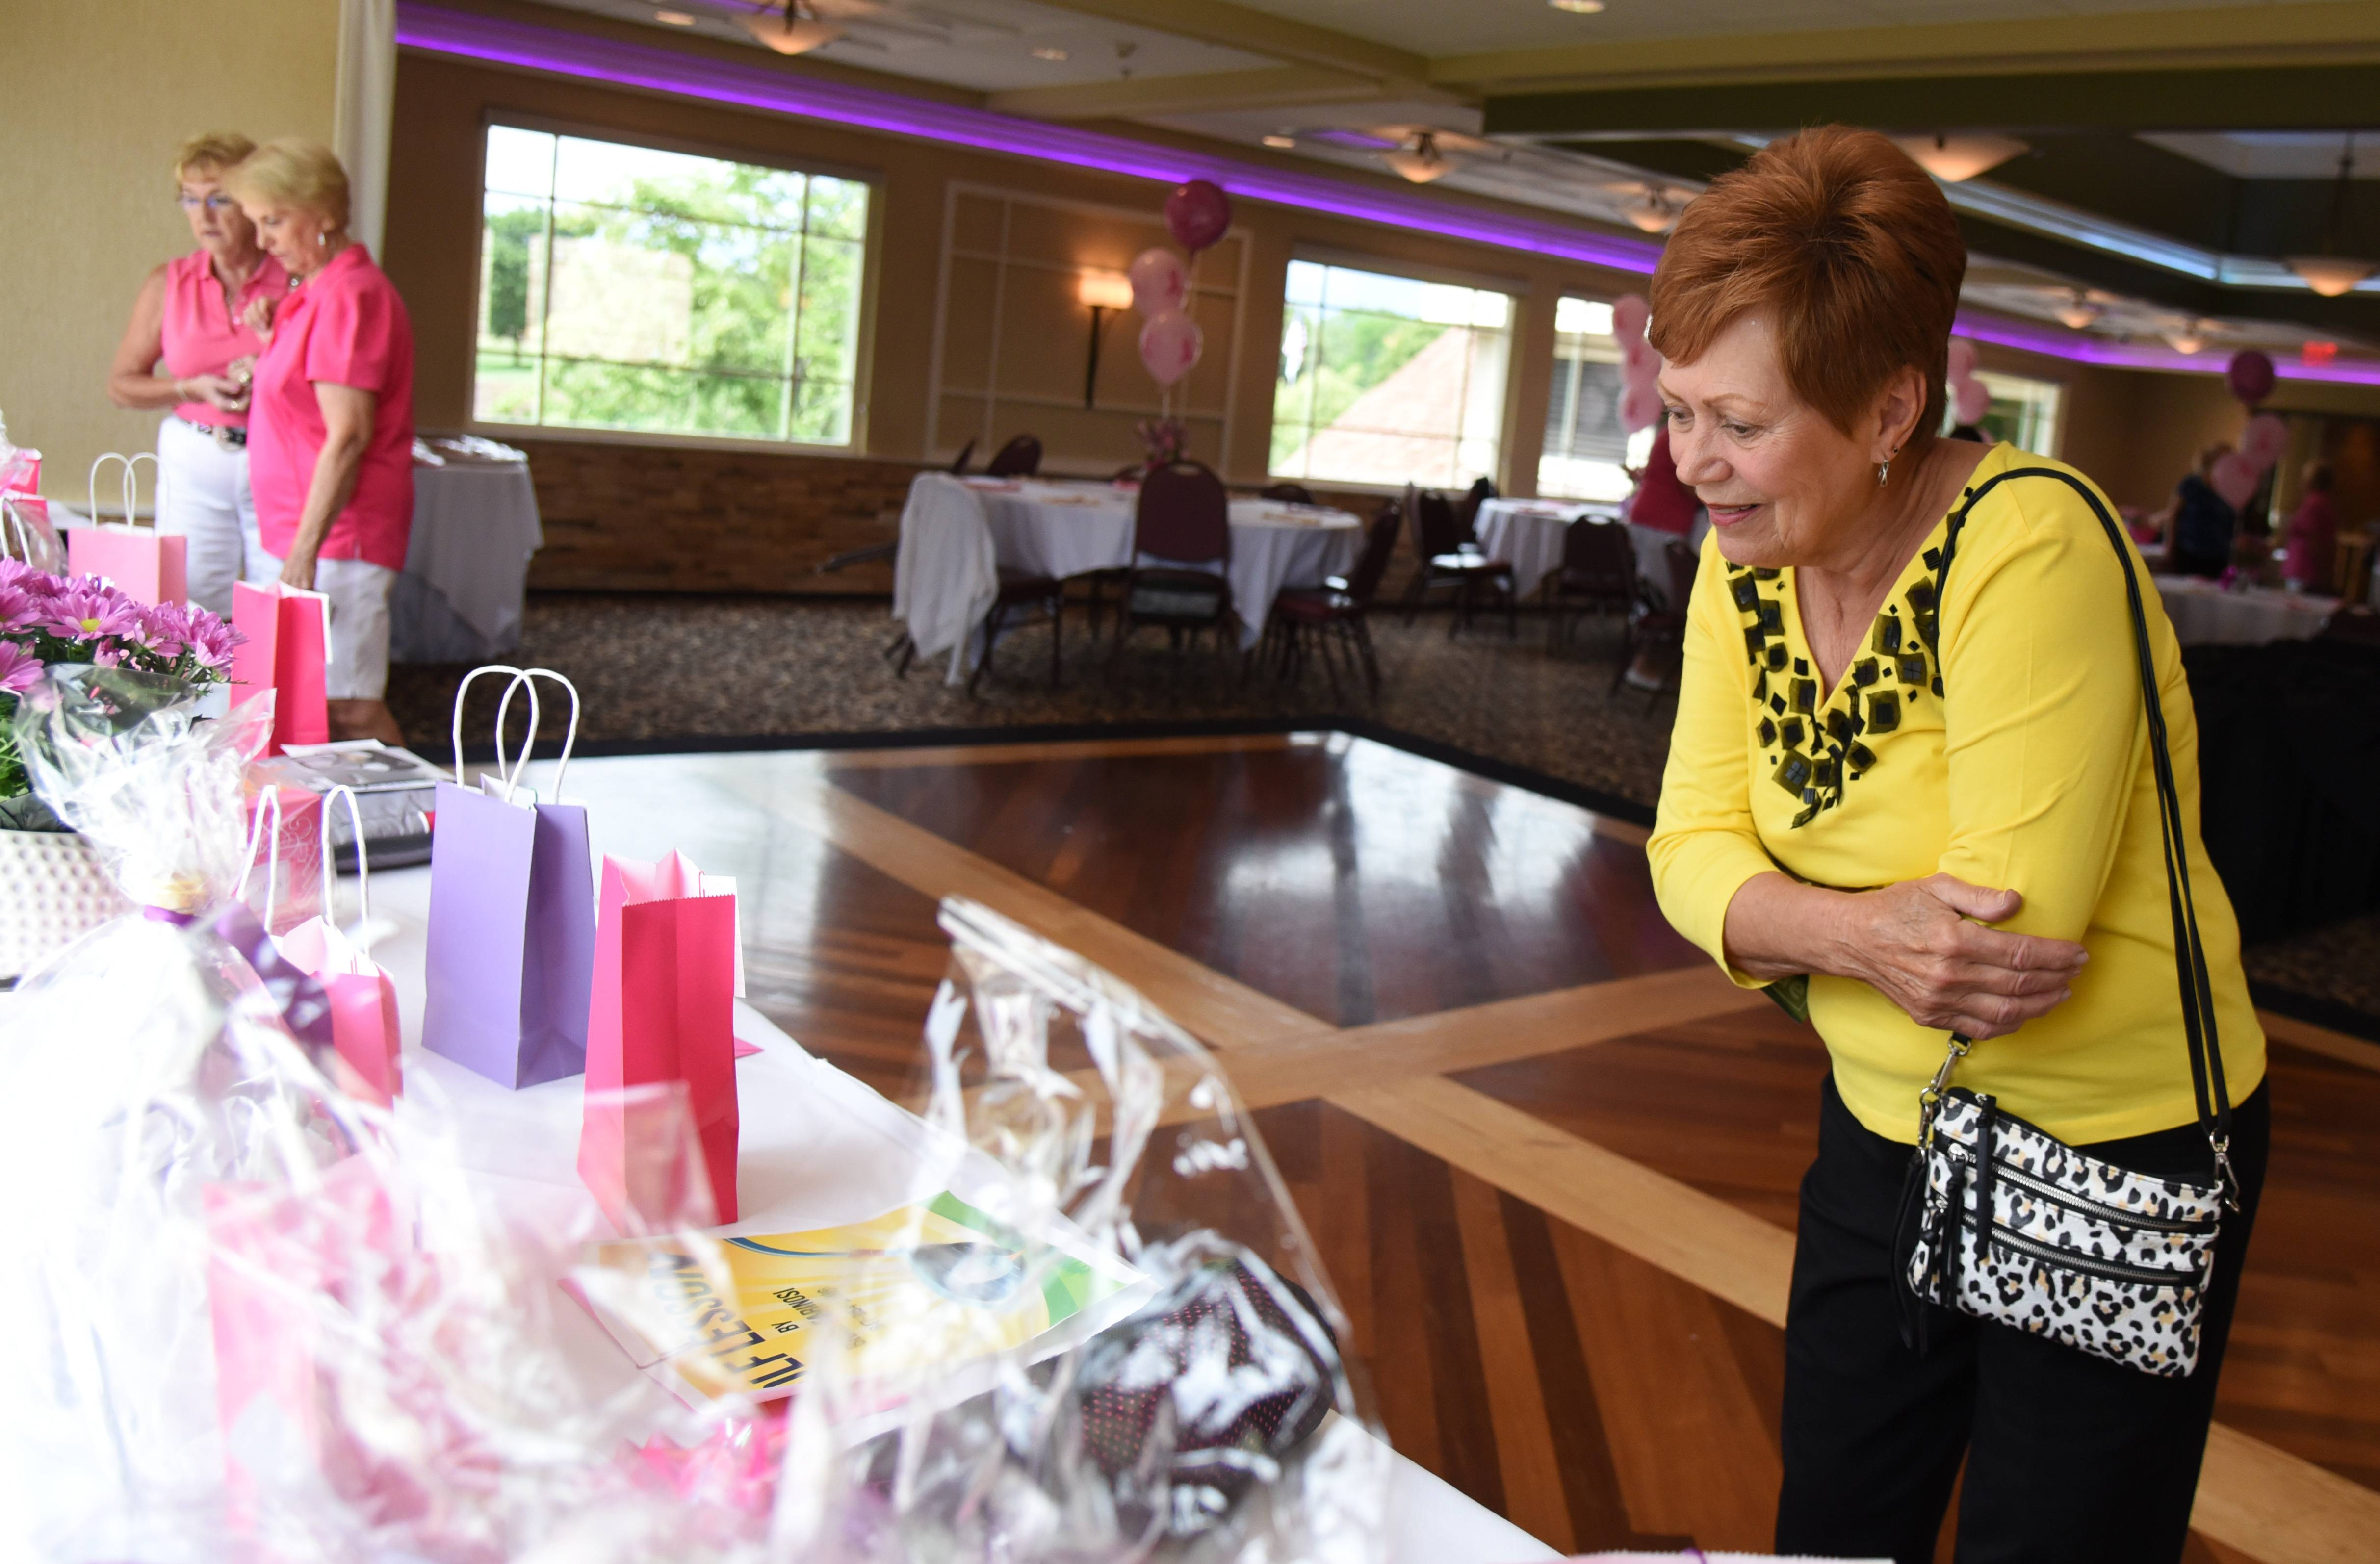 Vicki Casale of Bloomingdale checks out some of the raffle prizes at a golf outing benefiting breast cancer research at Schaumburg Golf Club Monday.